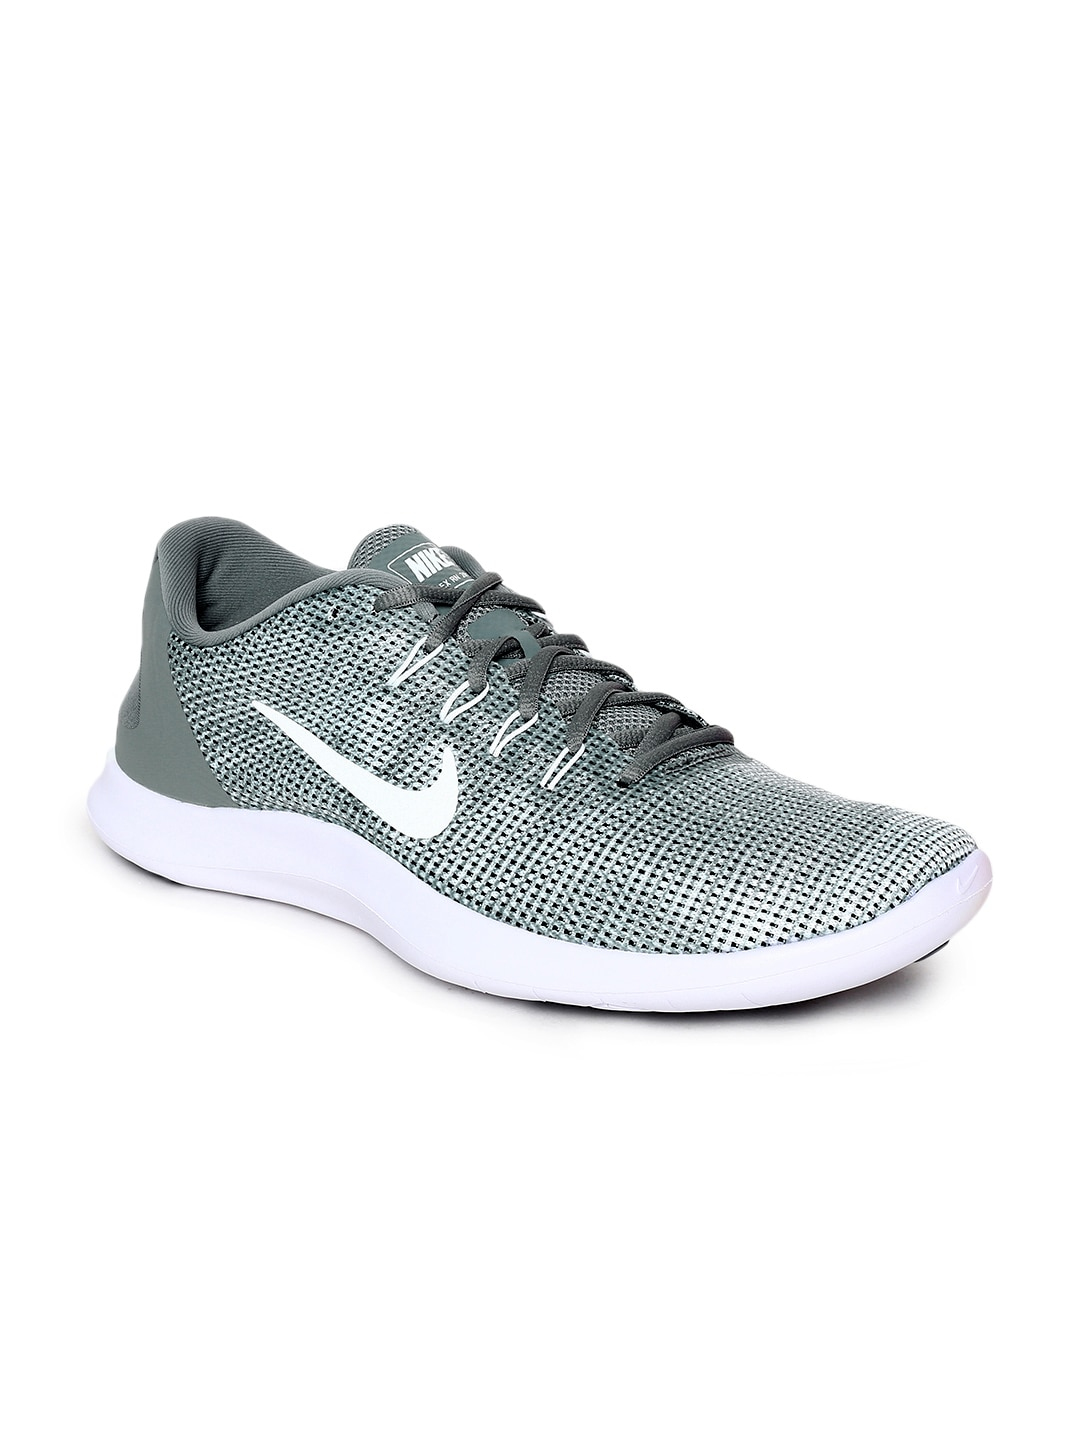 8320297dae Nike Shoes - Buy Nike Shoes for Men   Women Online